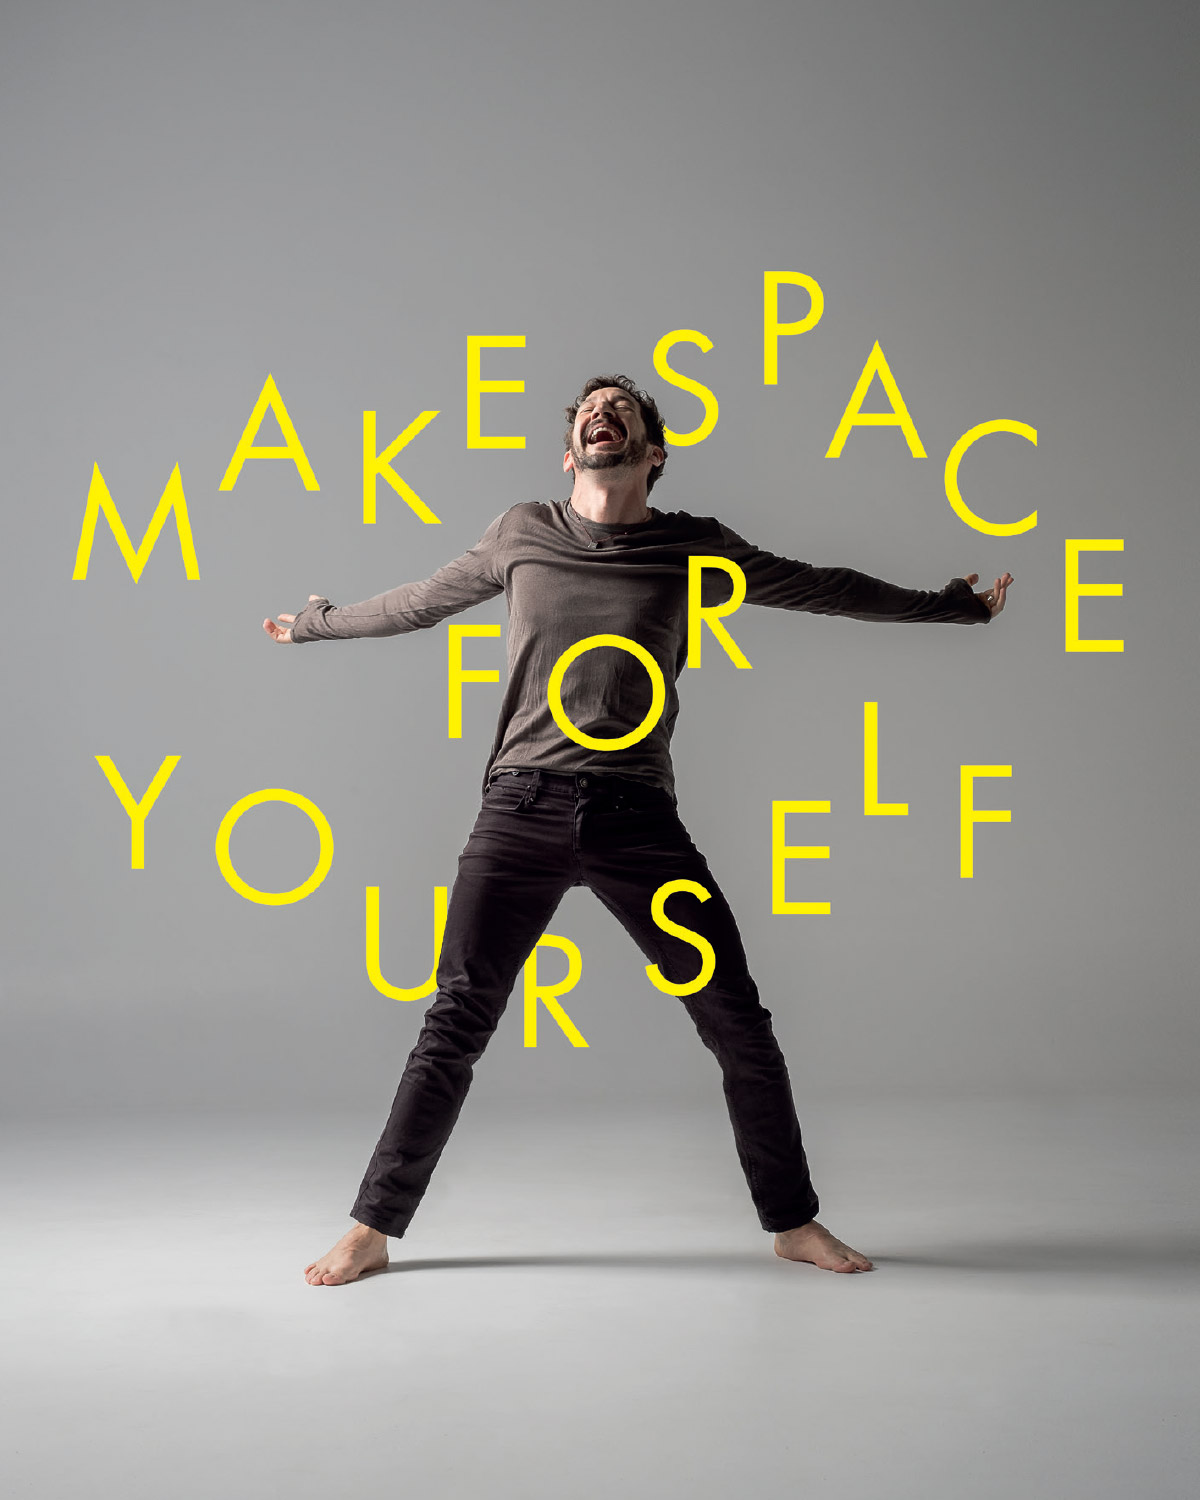 Soul Motion - Make space for yourself